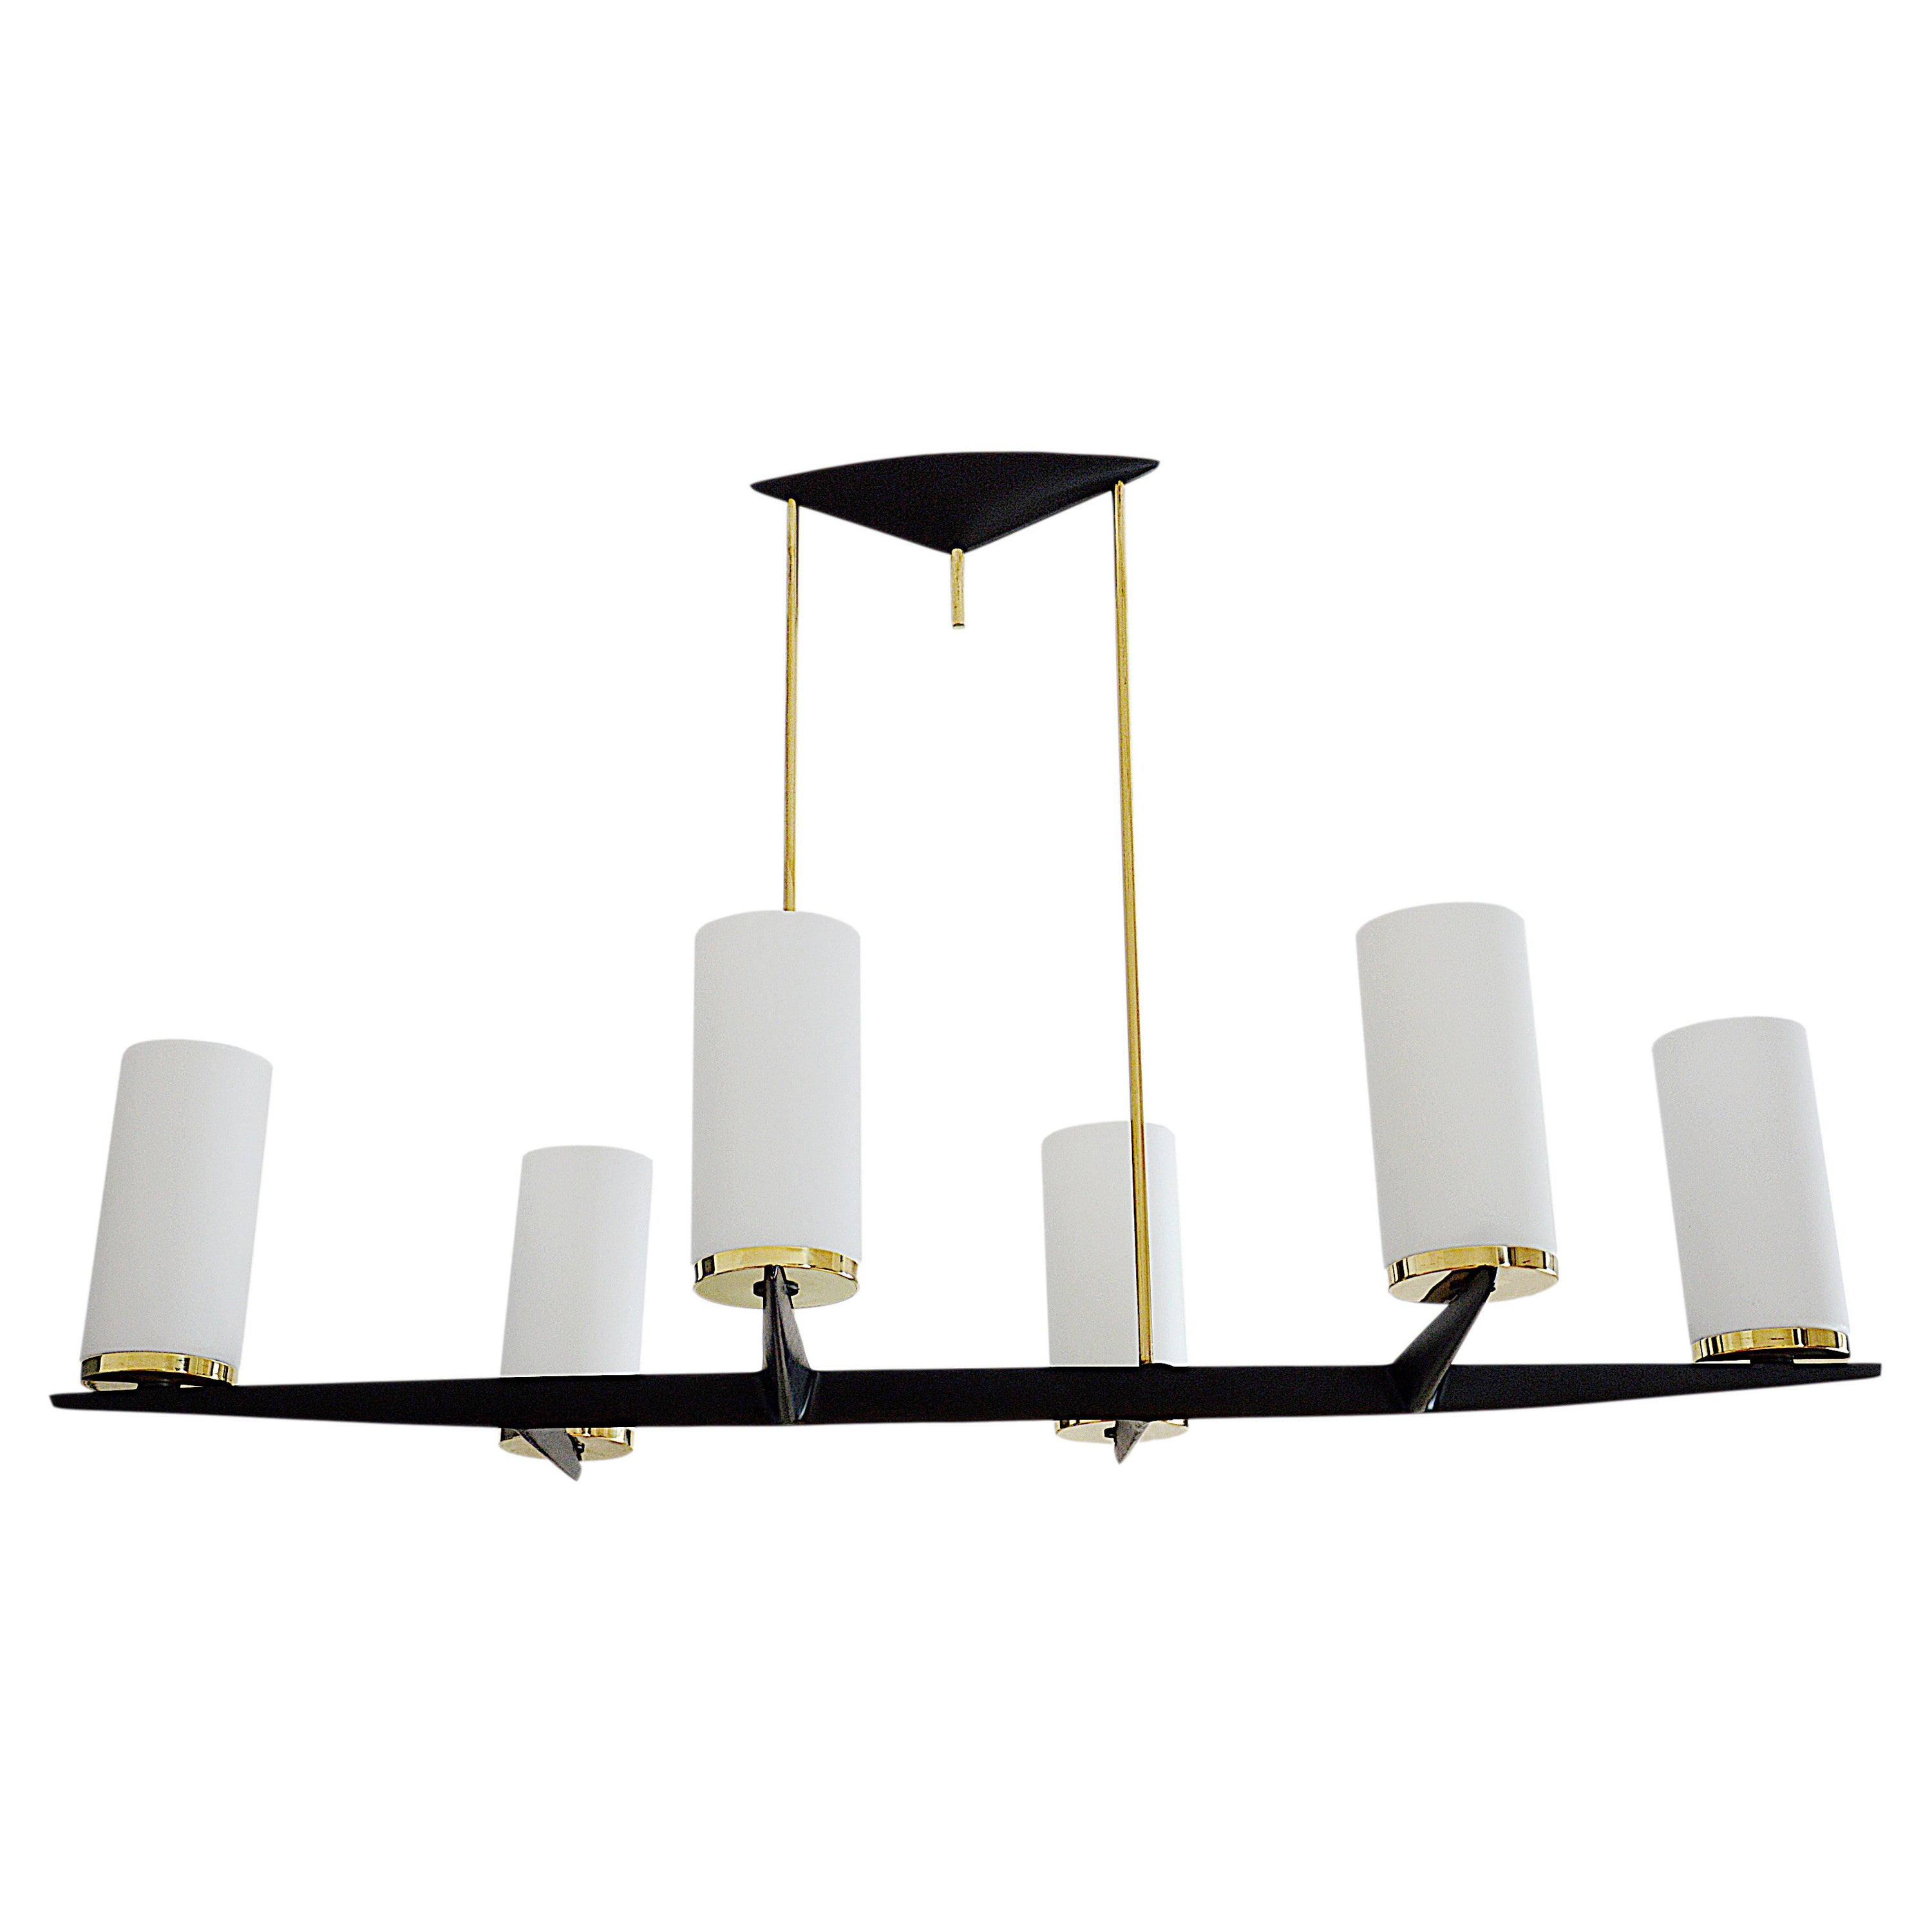 Arlus French Midcentury Classy Chandelier, 1950s